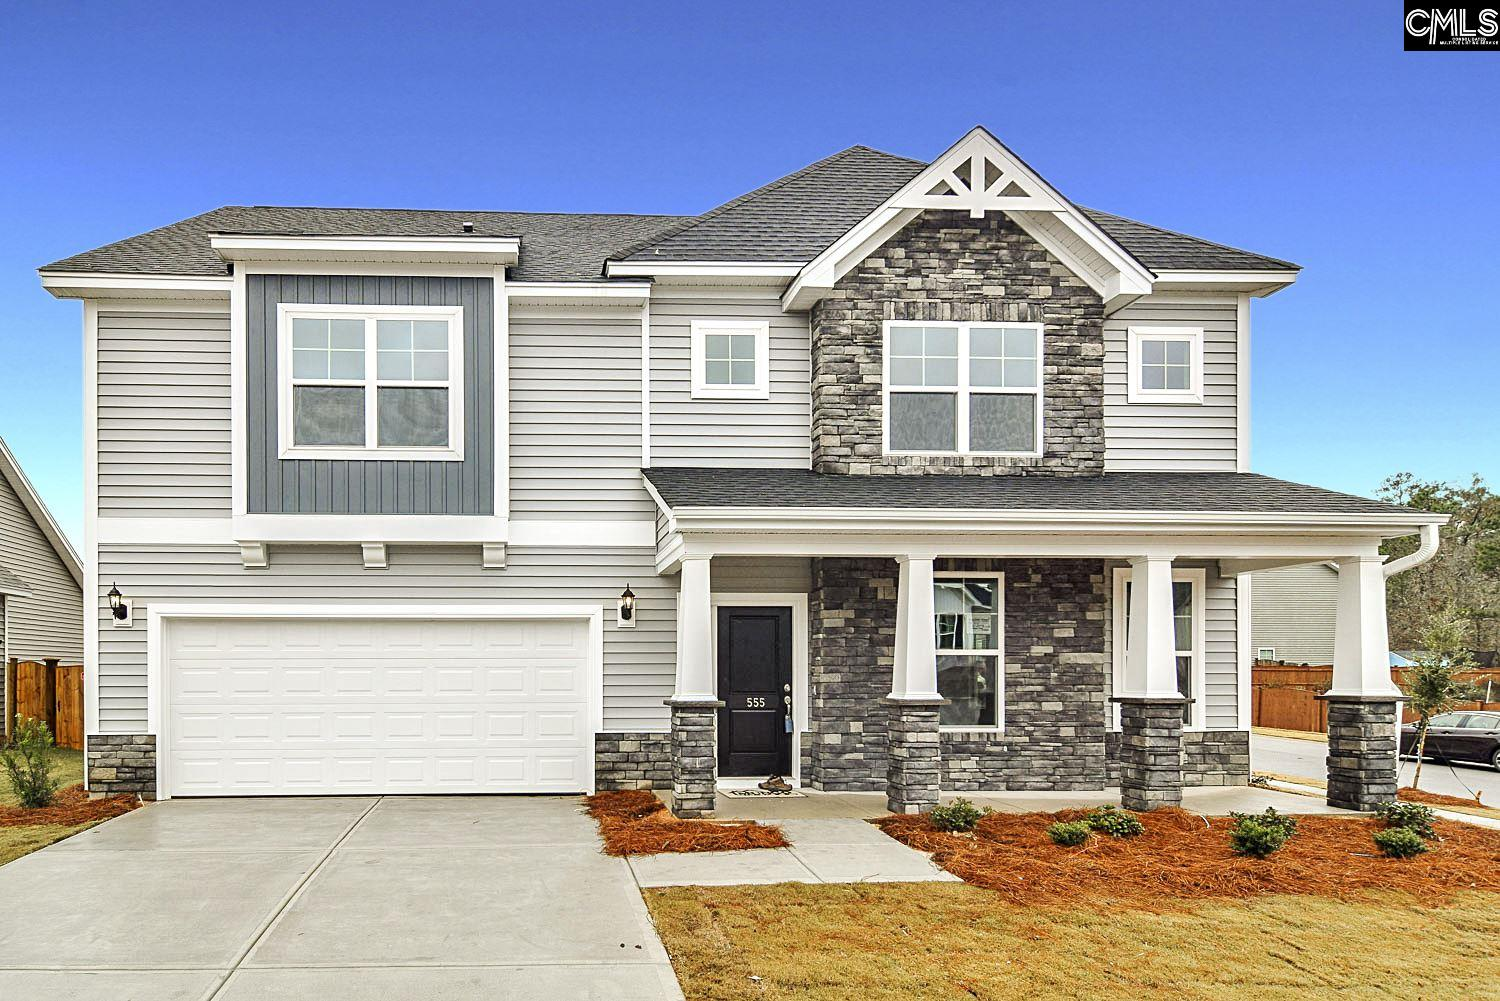 555 Ariel #382 Lexington, SC 29072